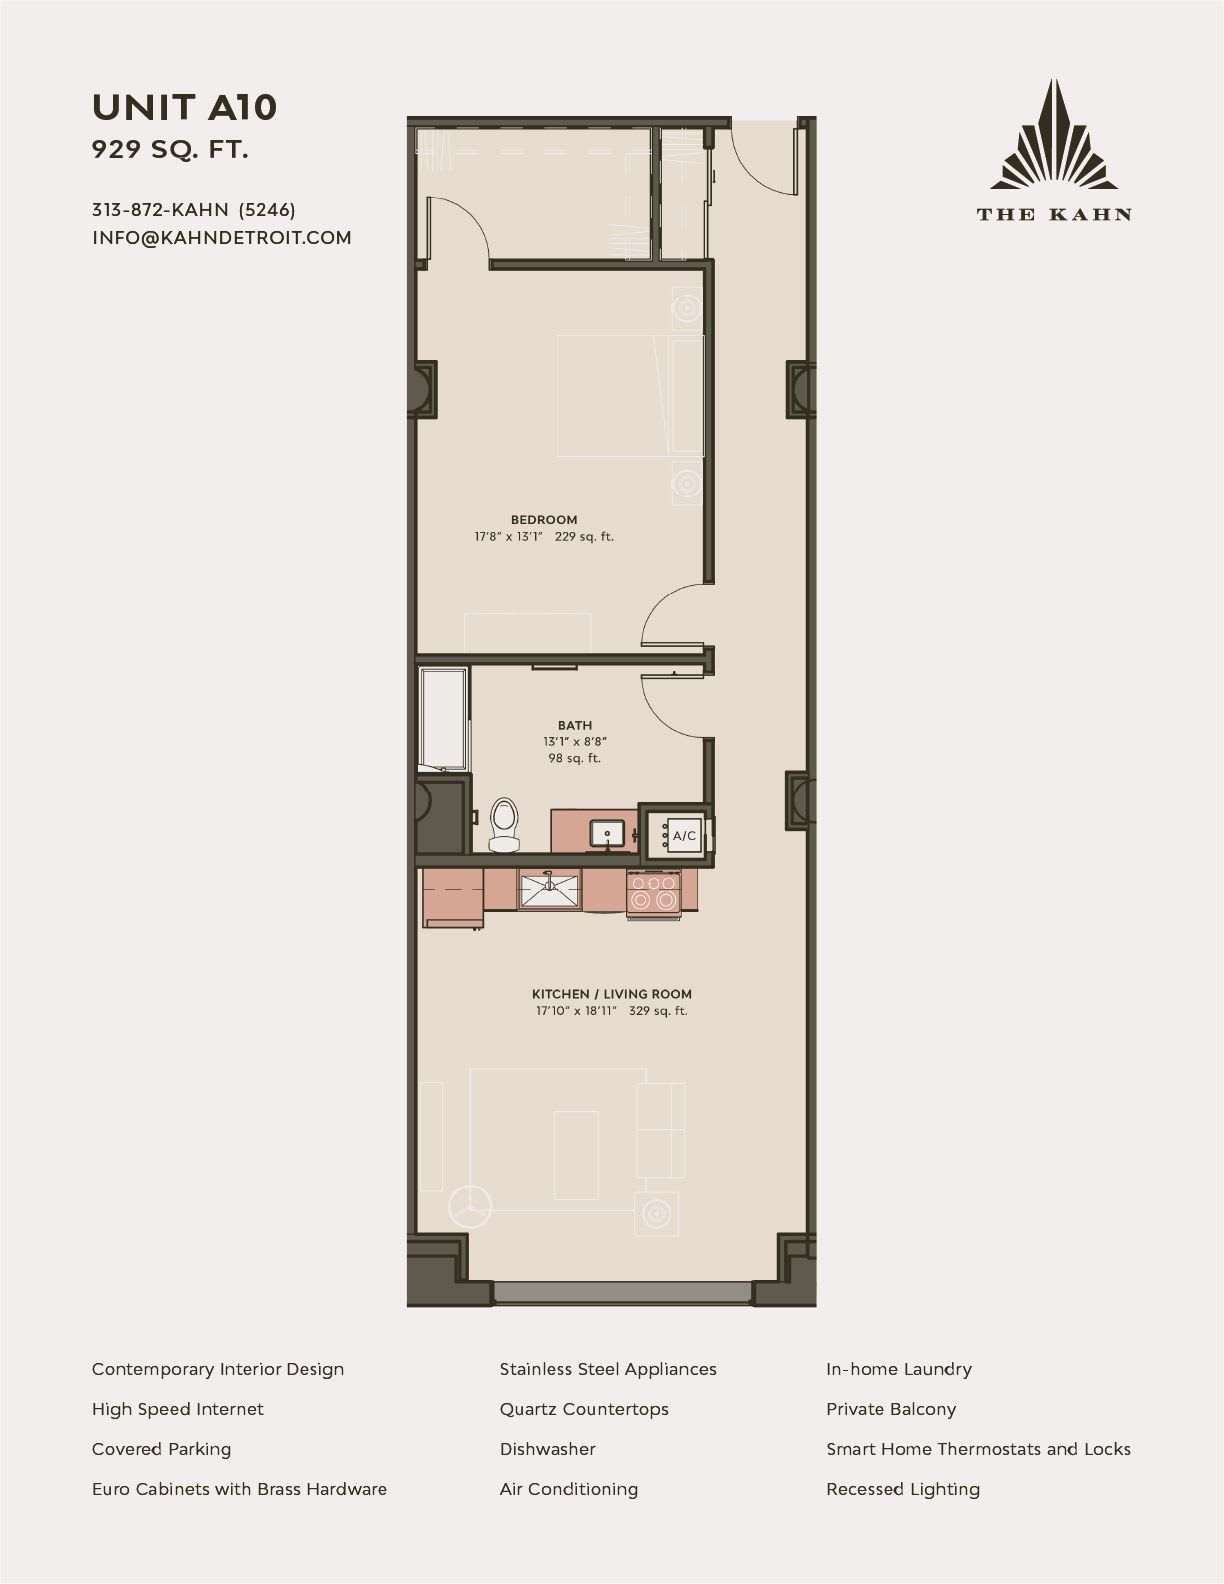 A10 floor plan image at The Kahn in Detroit, Michigan